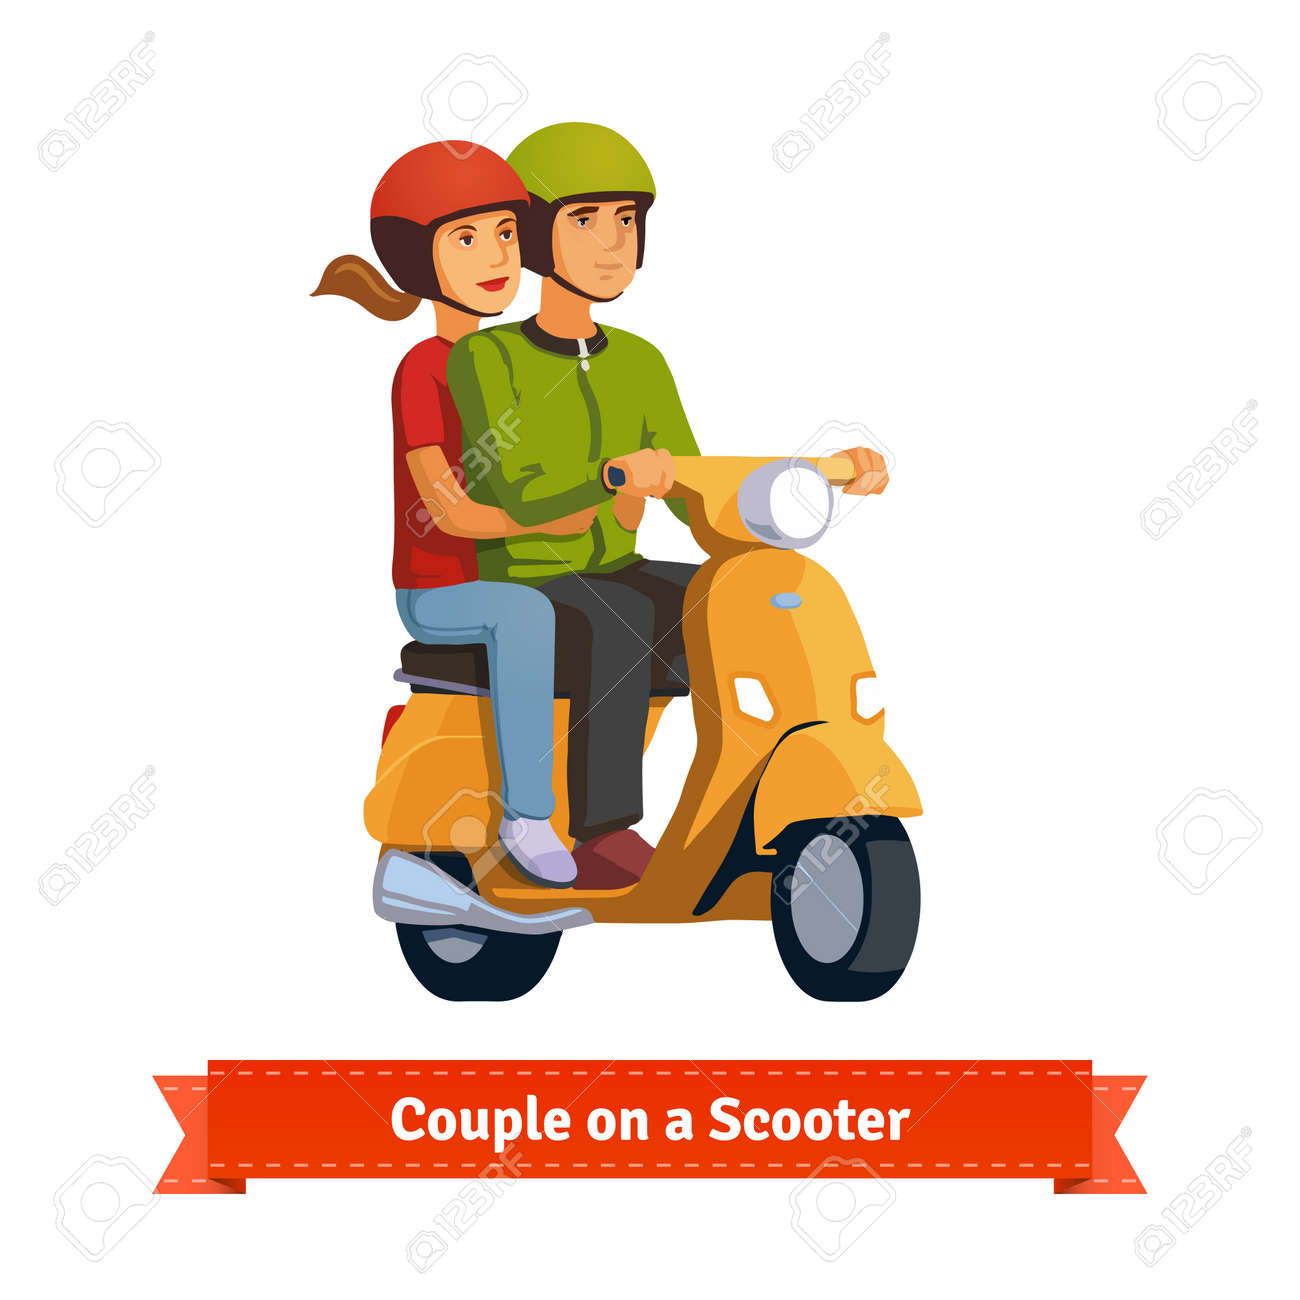 Couple on a scooter. Happy riding together. Flat style illustration. EPS 10 vector. - 51136743